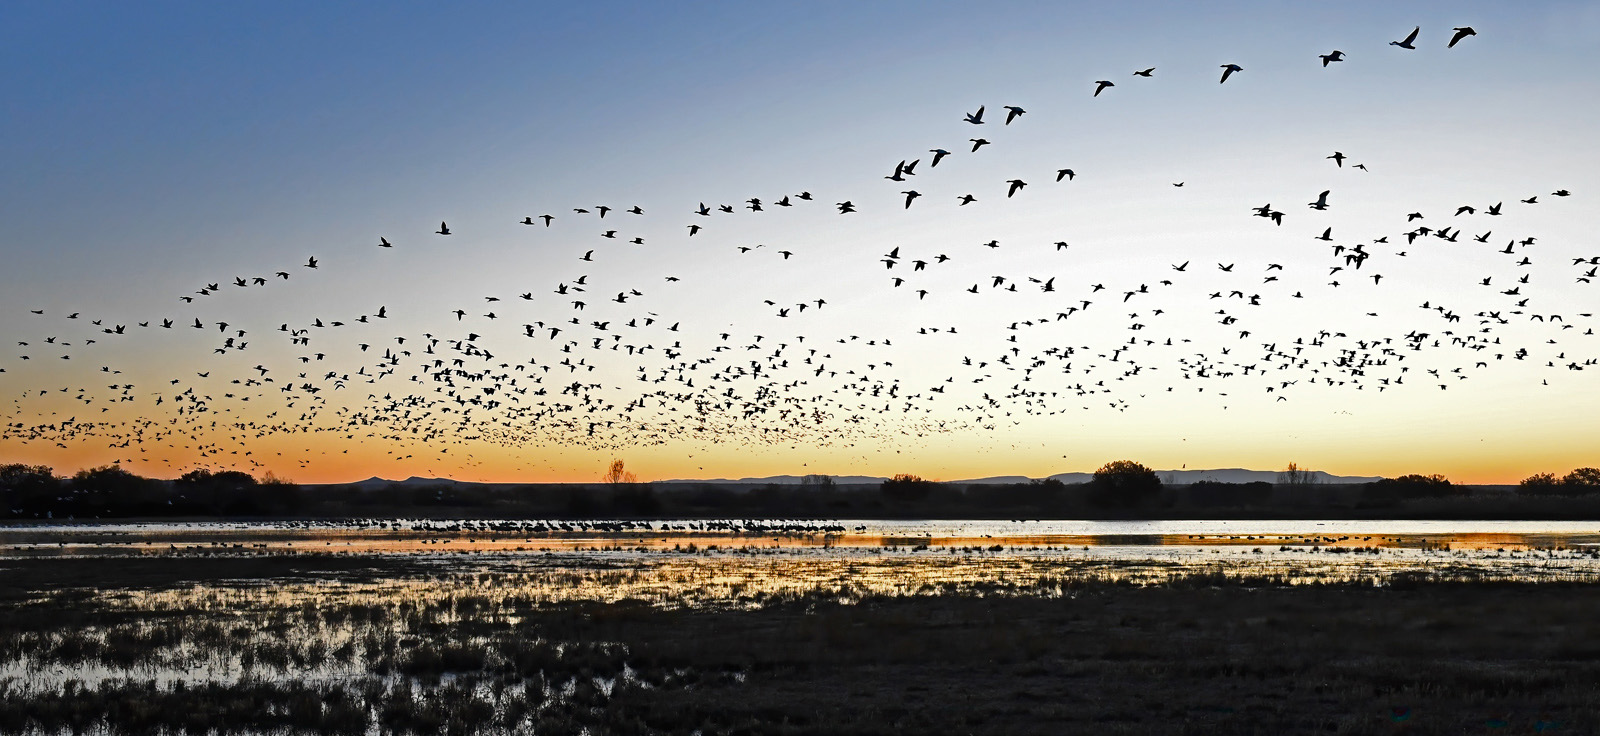 Name:  Snow-Geese-at-Sunrise-R---Bosque-del-Apache-111319-midi1600.jpg